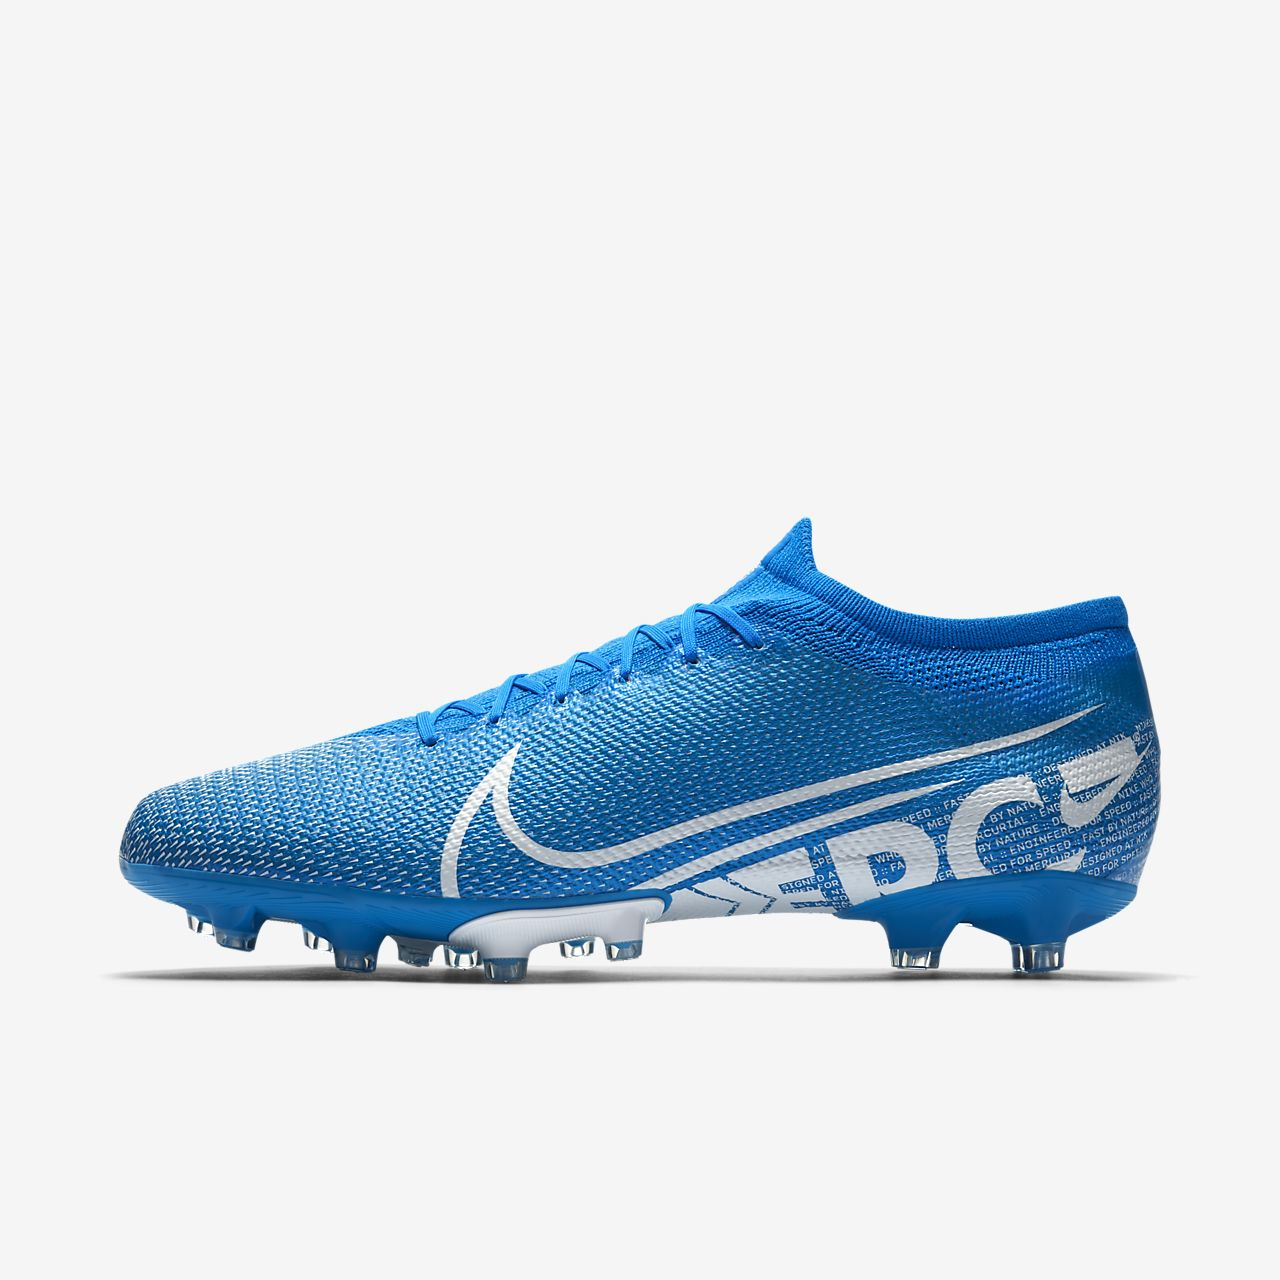 Nike Mercurial Vapor 13 Pro AG-PRO Artificial-Grass Football Boot